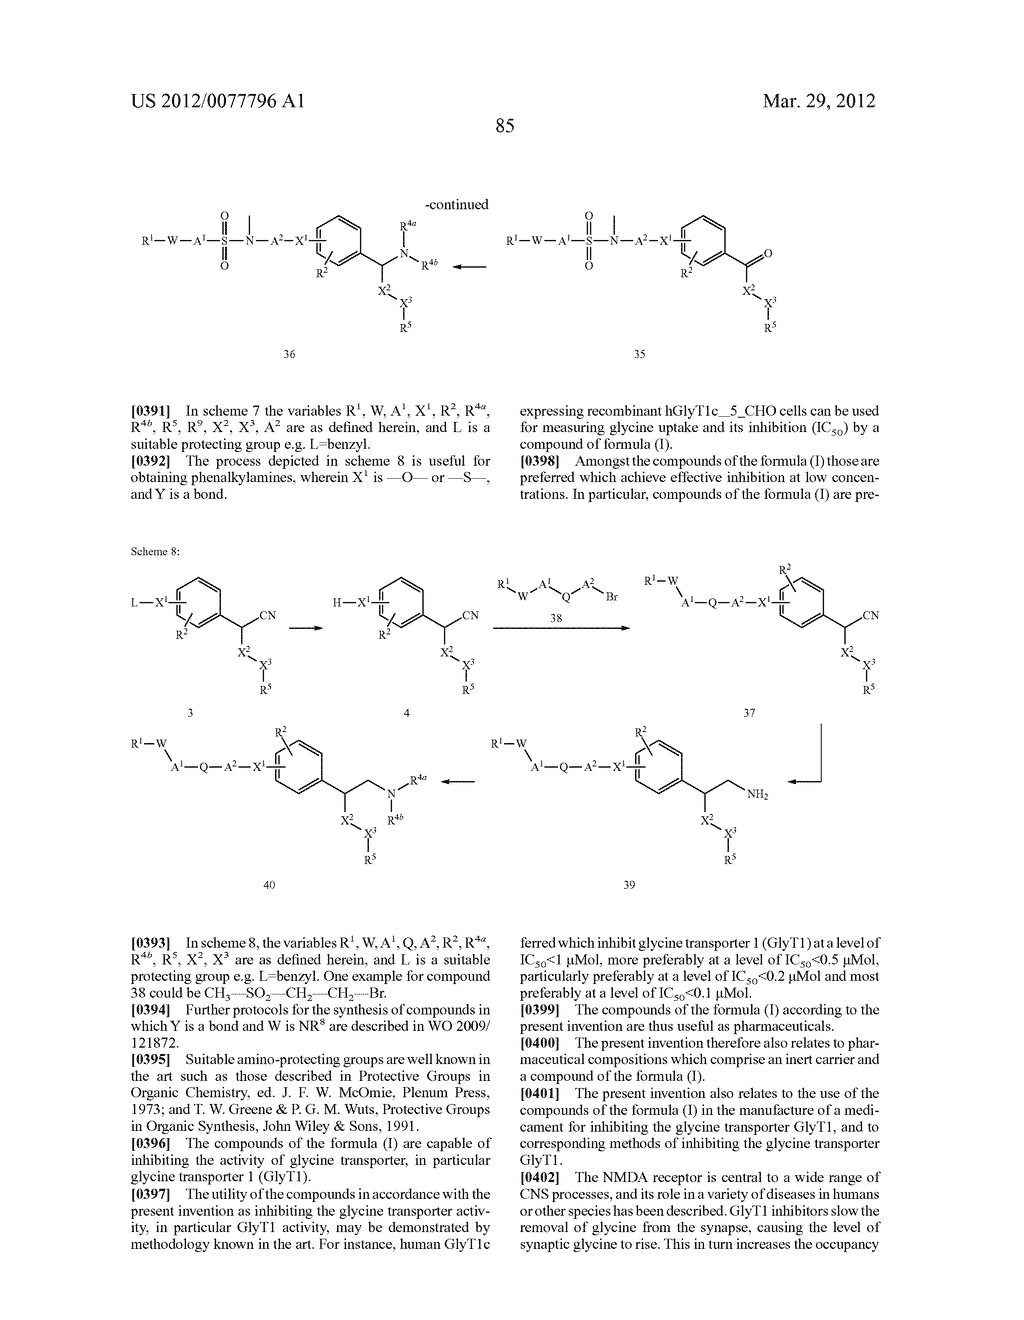 PHENALKYLAMINE DERIVATIVES, PHARMACEUTICAL COMPOSITIONS CONTAINING THEM,     AND THEIR USE IN THERAPY - diagram, schematic, and image 86